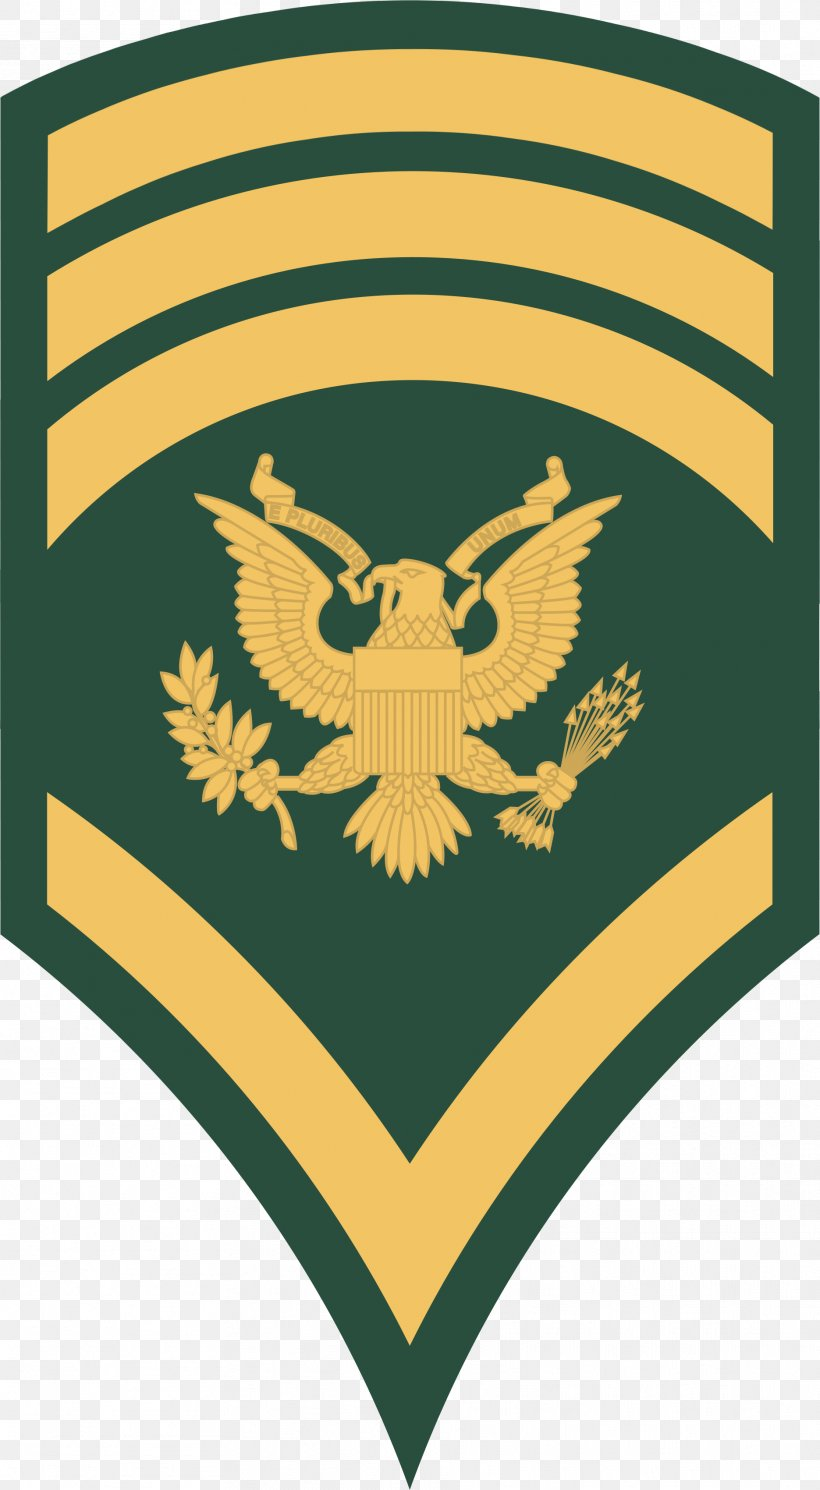 Specialist Military Rank United States Army Enlisted Rank Insignia Non-commissioned Officer, PNG, 1871x3401px, Specialist, Area, Army, Army Officer, Brand Download Free